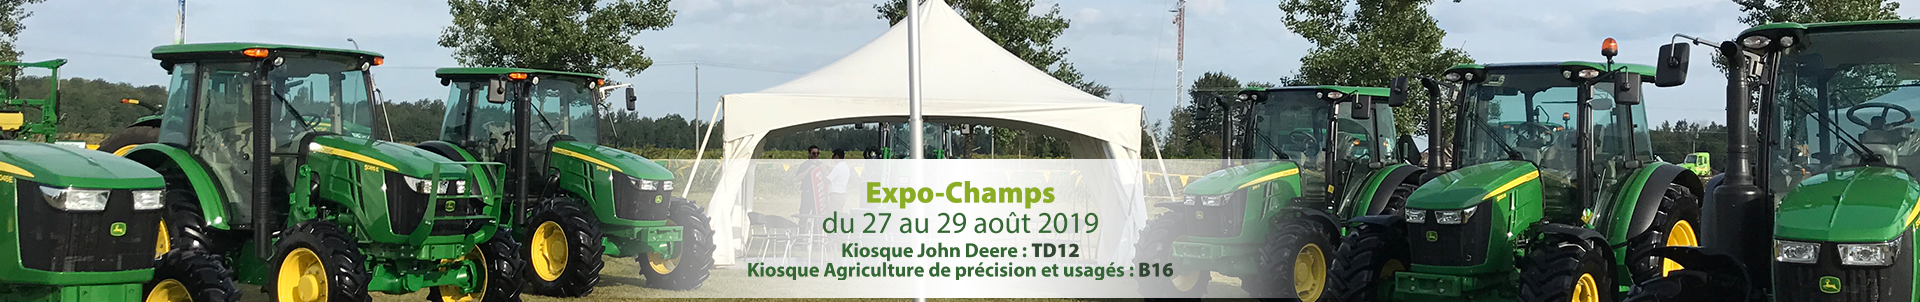 expo-champs_2019